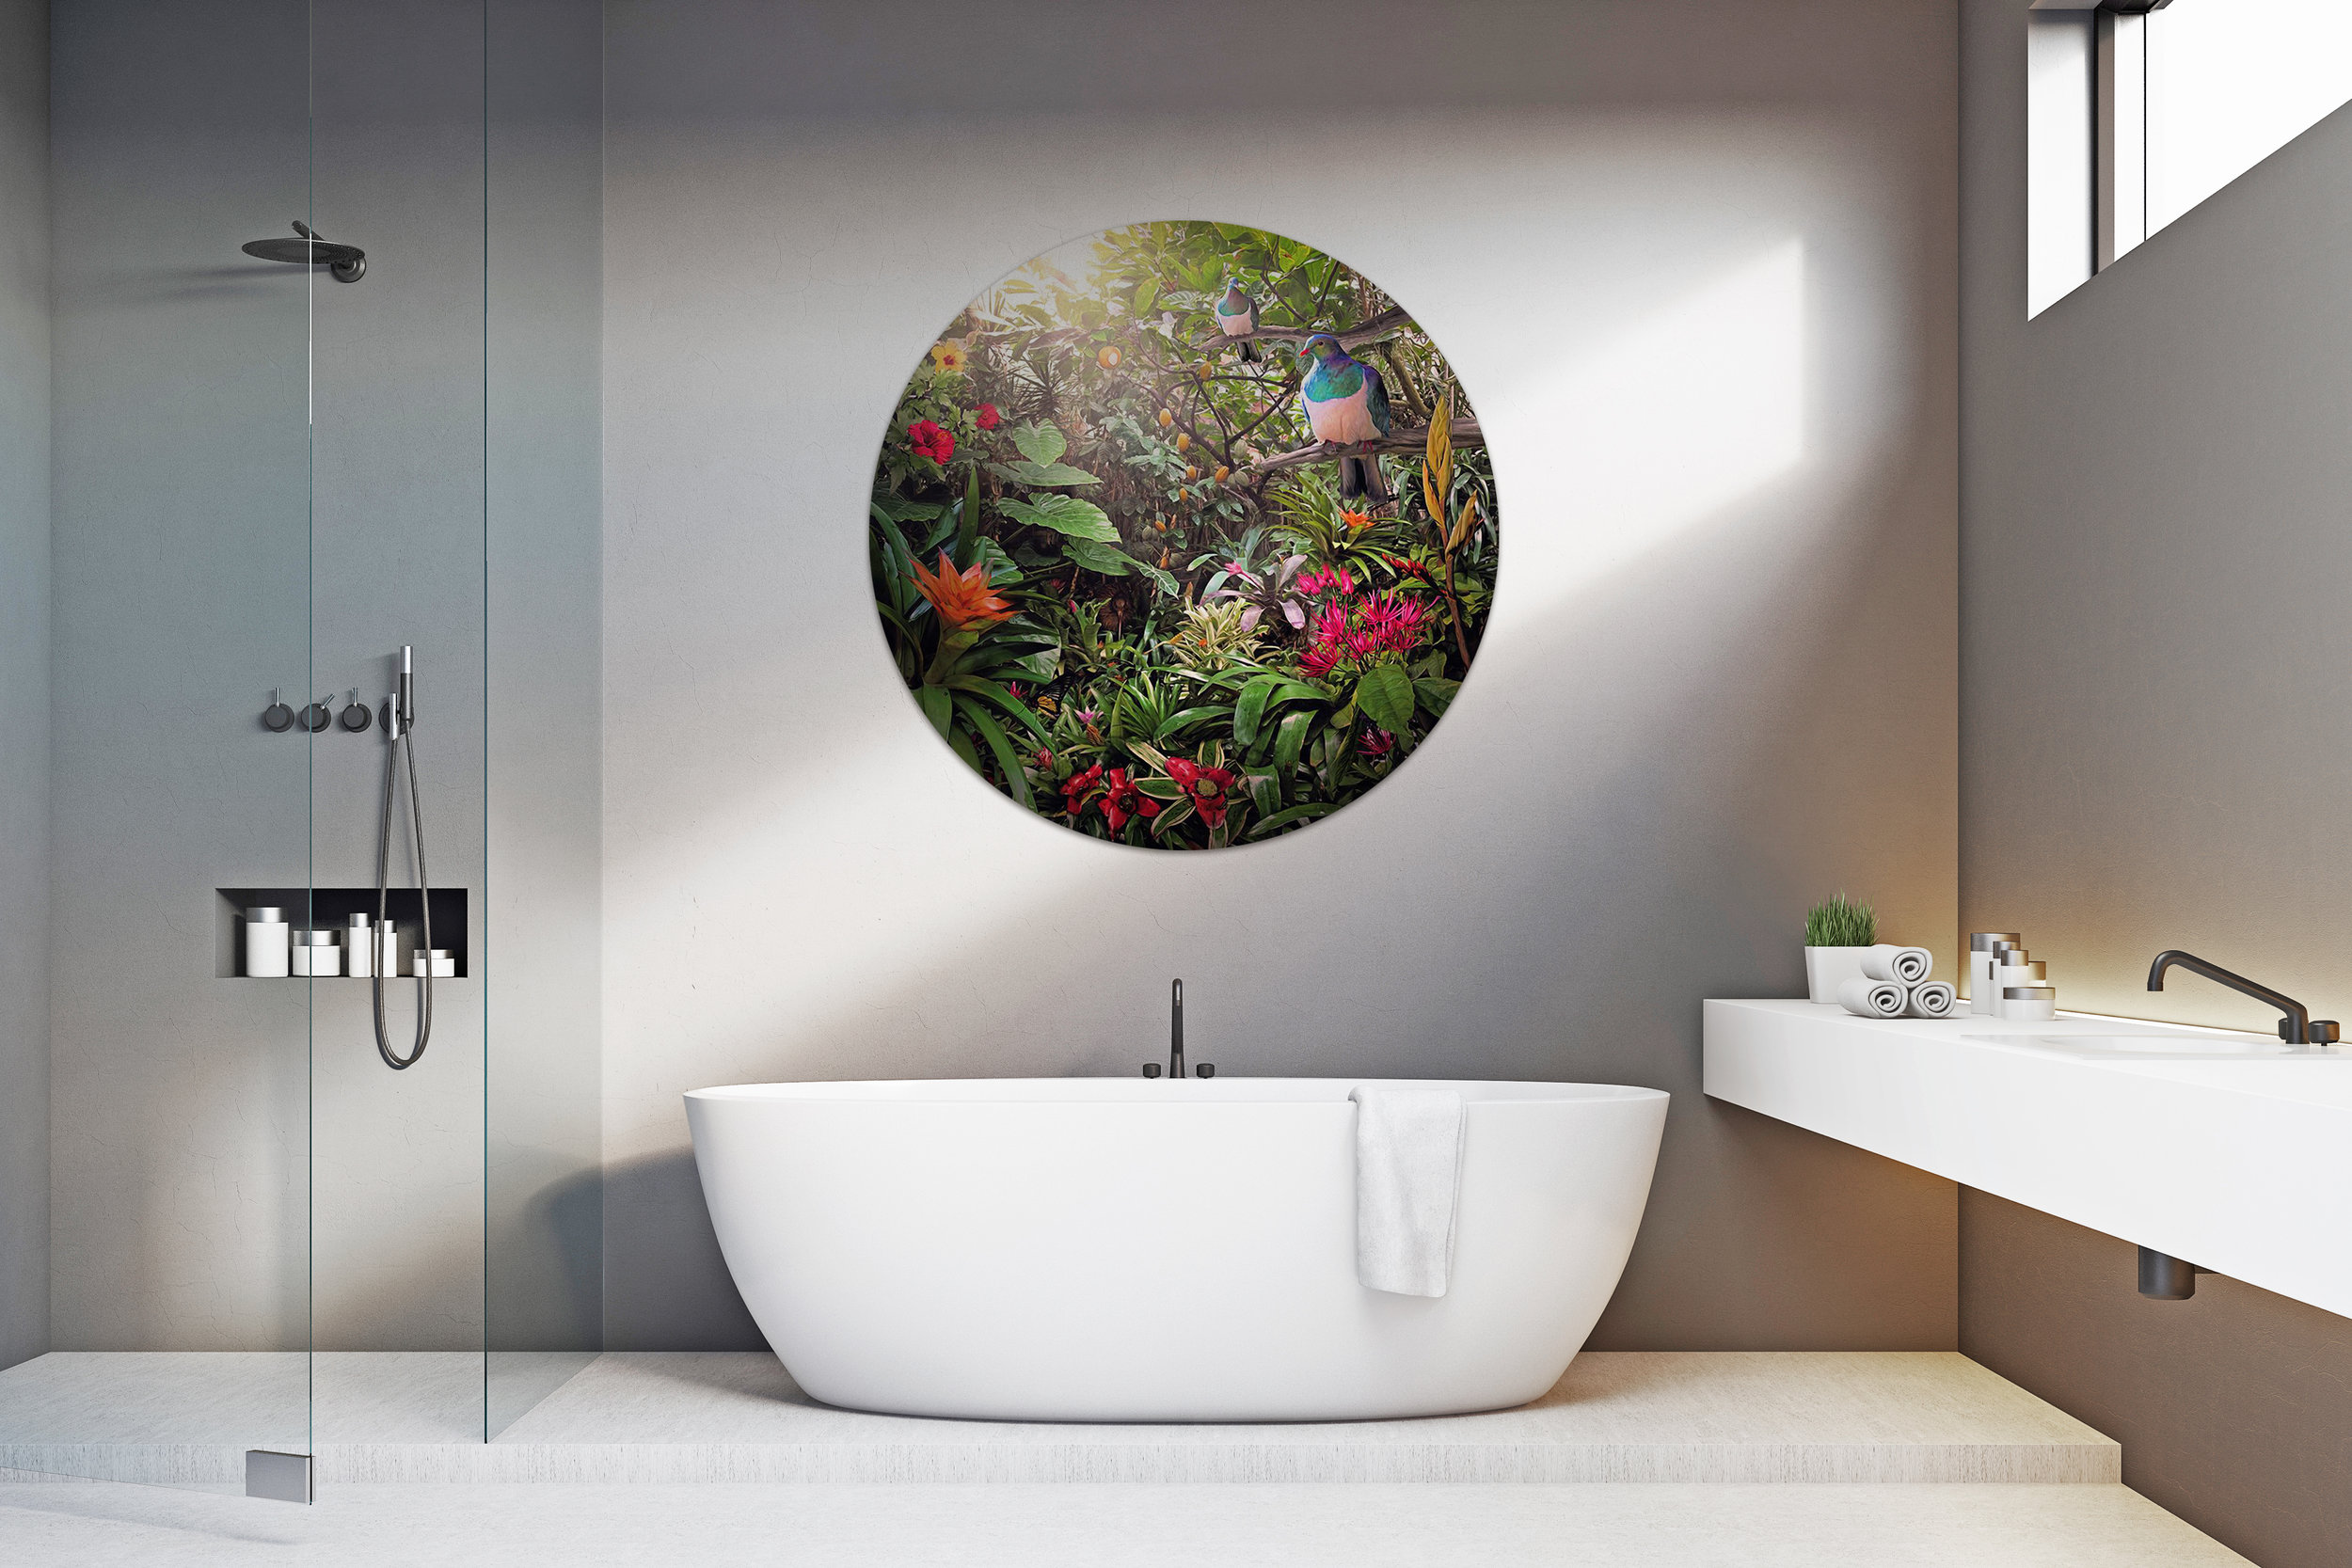 '' Temptation '' 1200mm diameter circular glass wall artwork